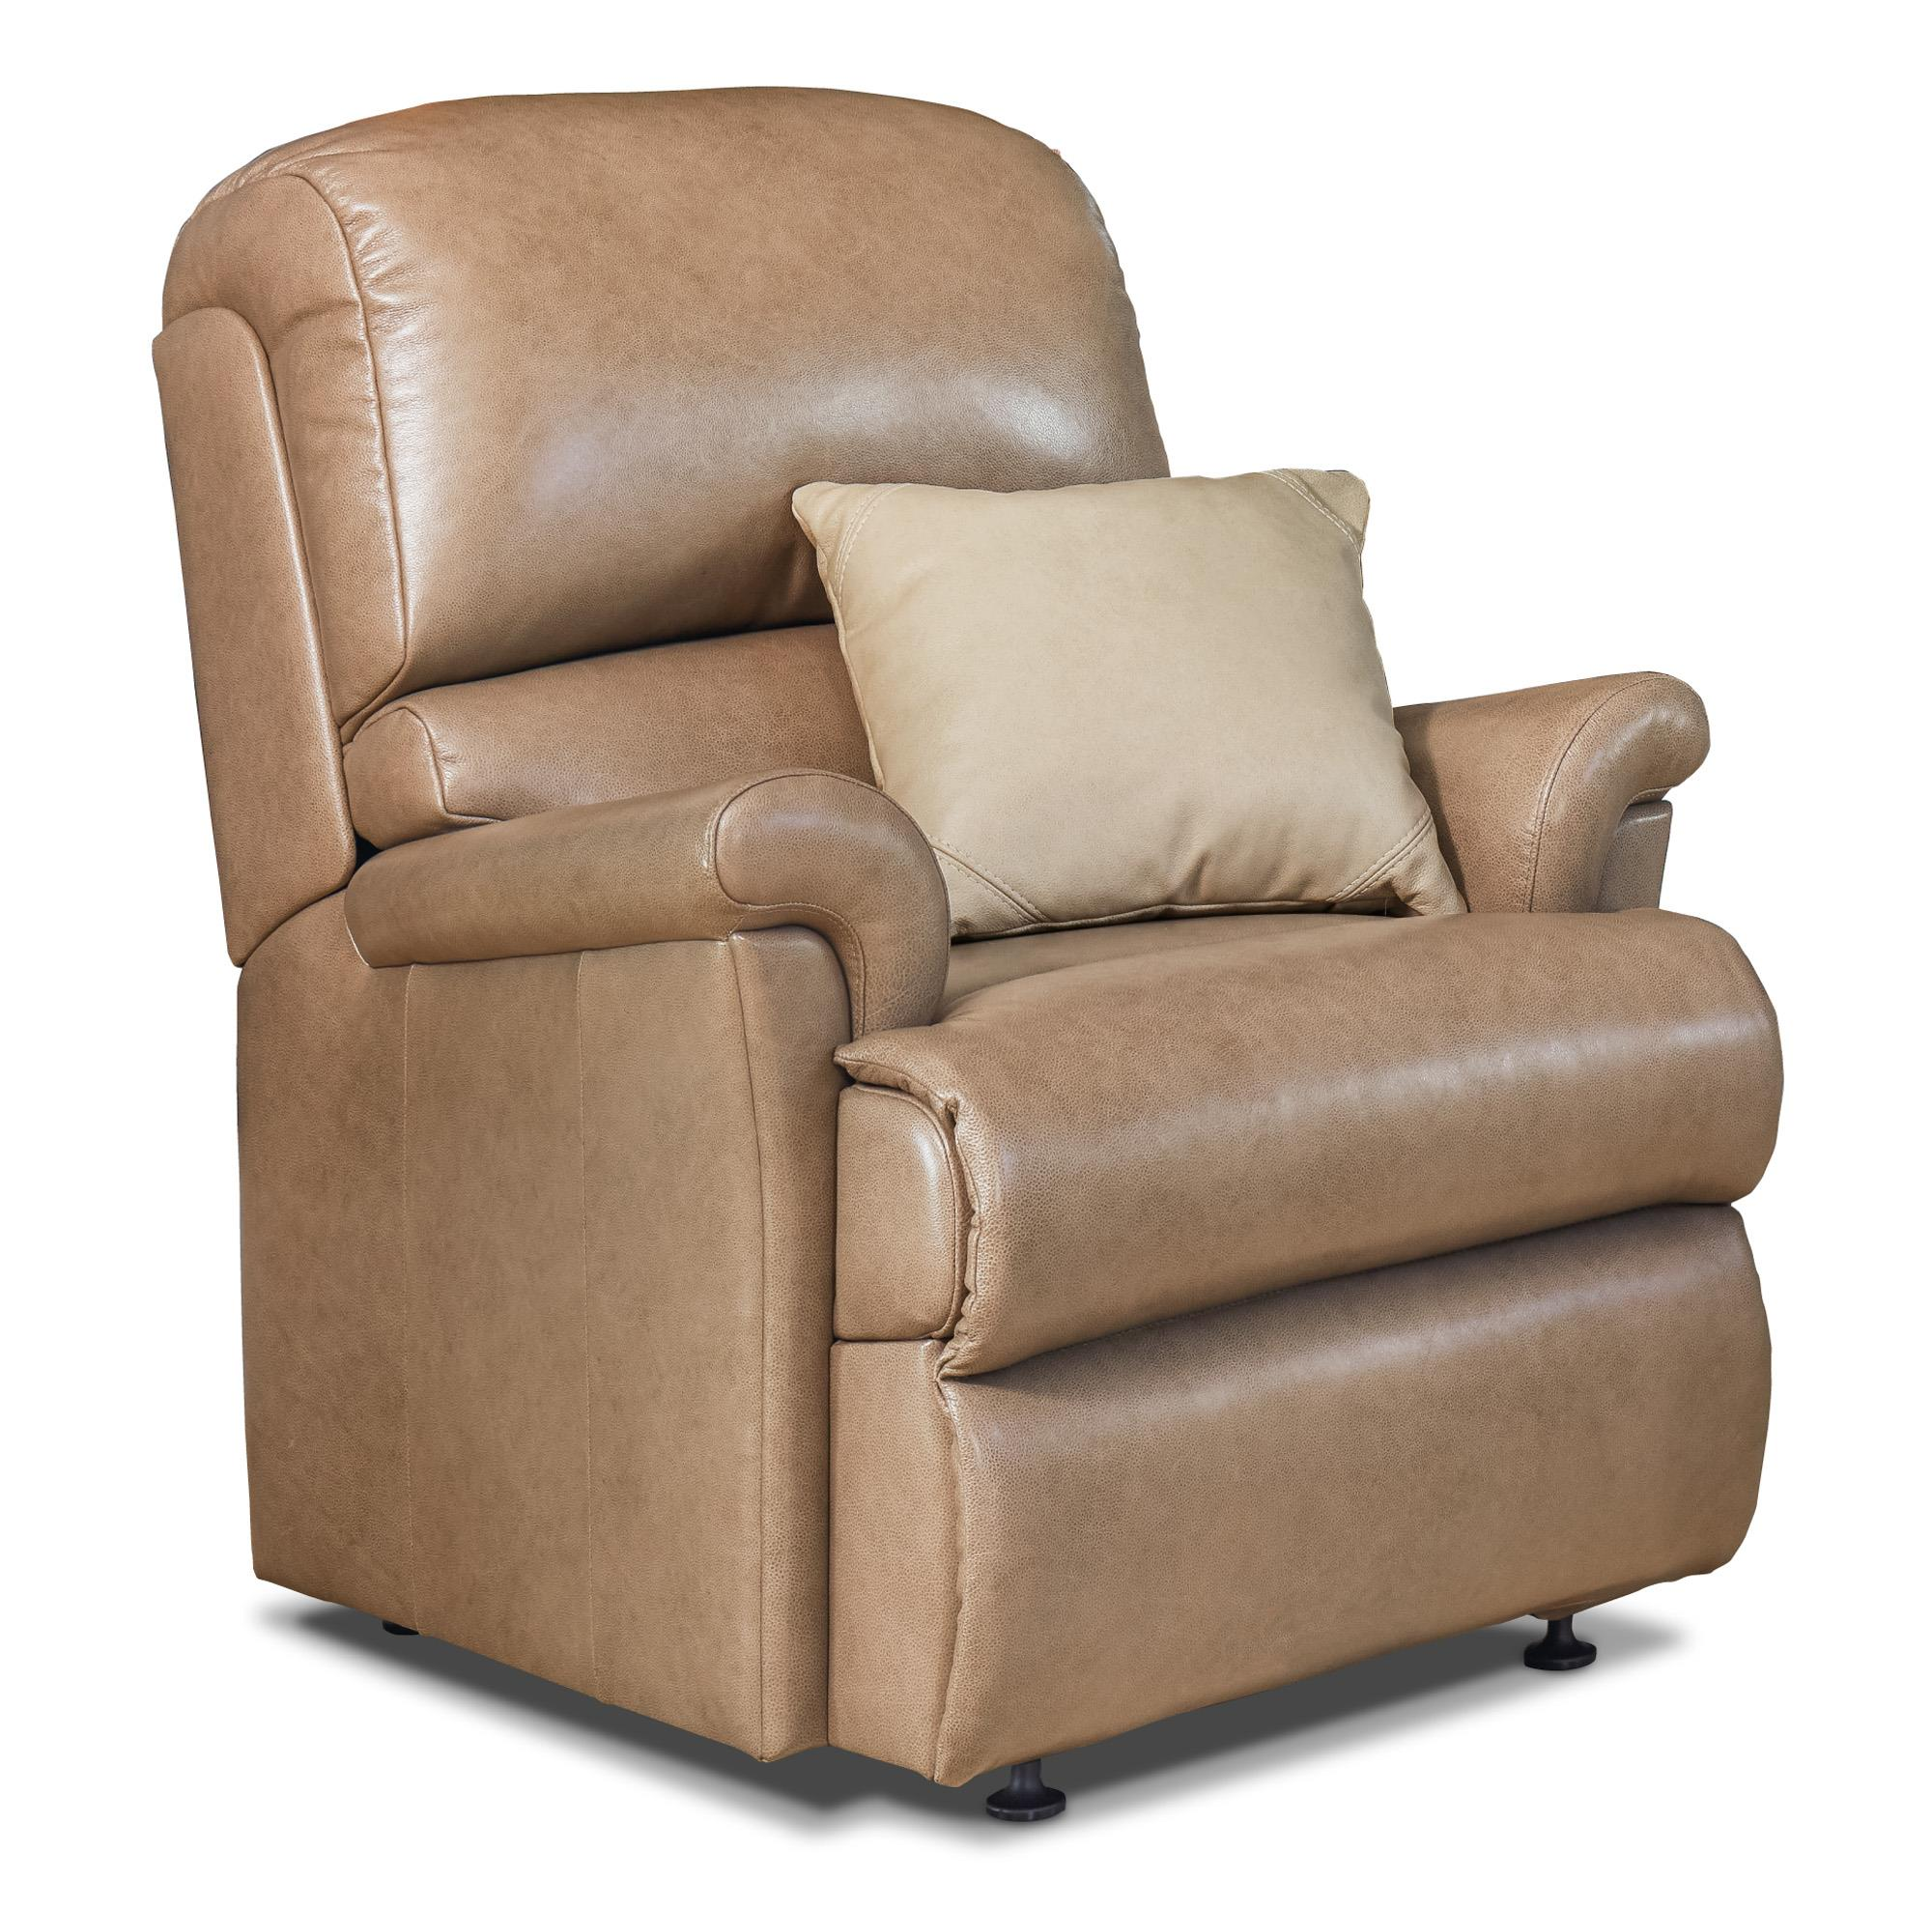 Nevada Leather Chair - by Sherborne